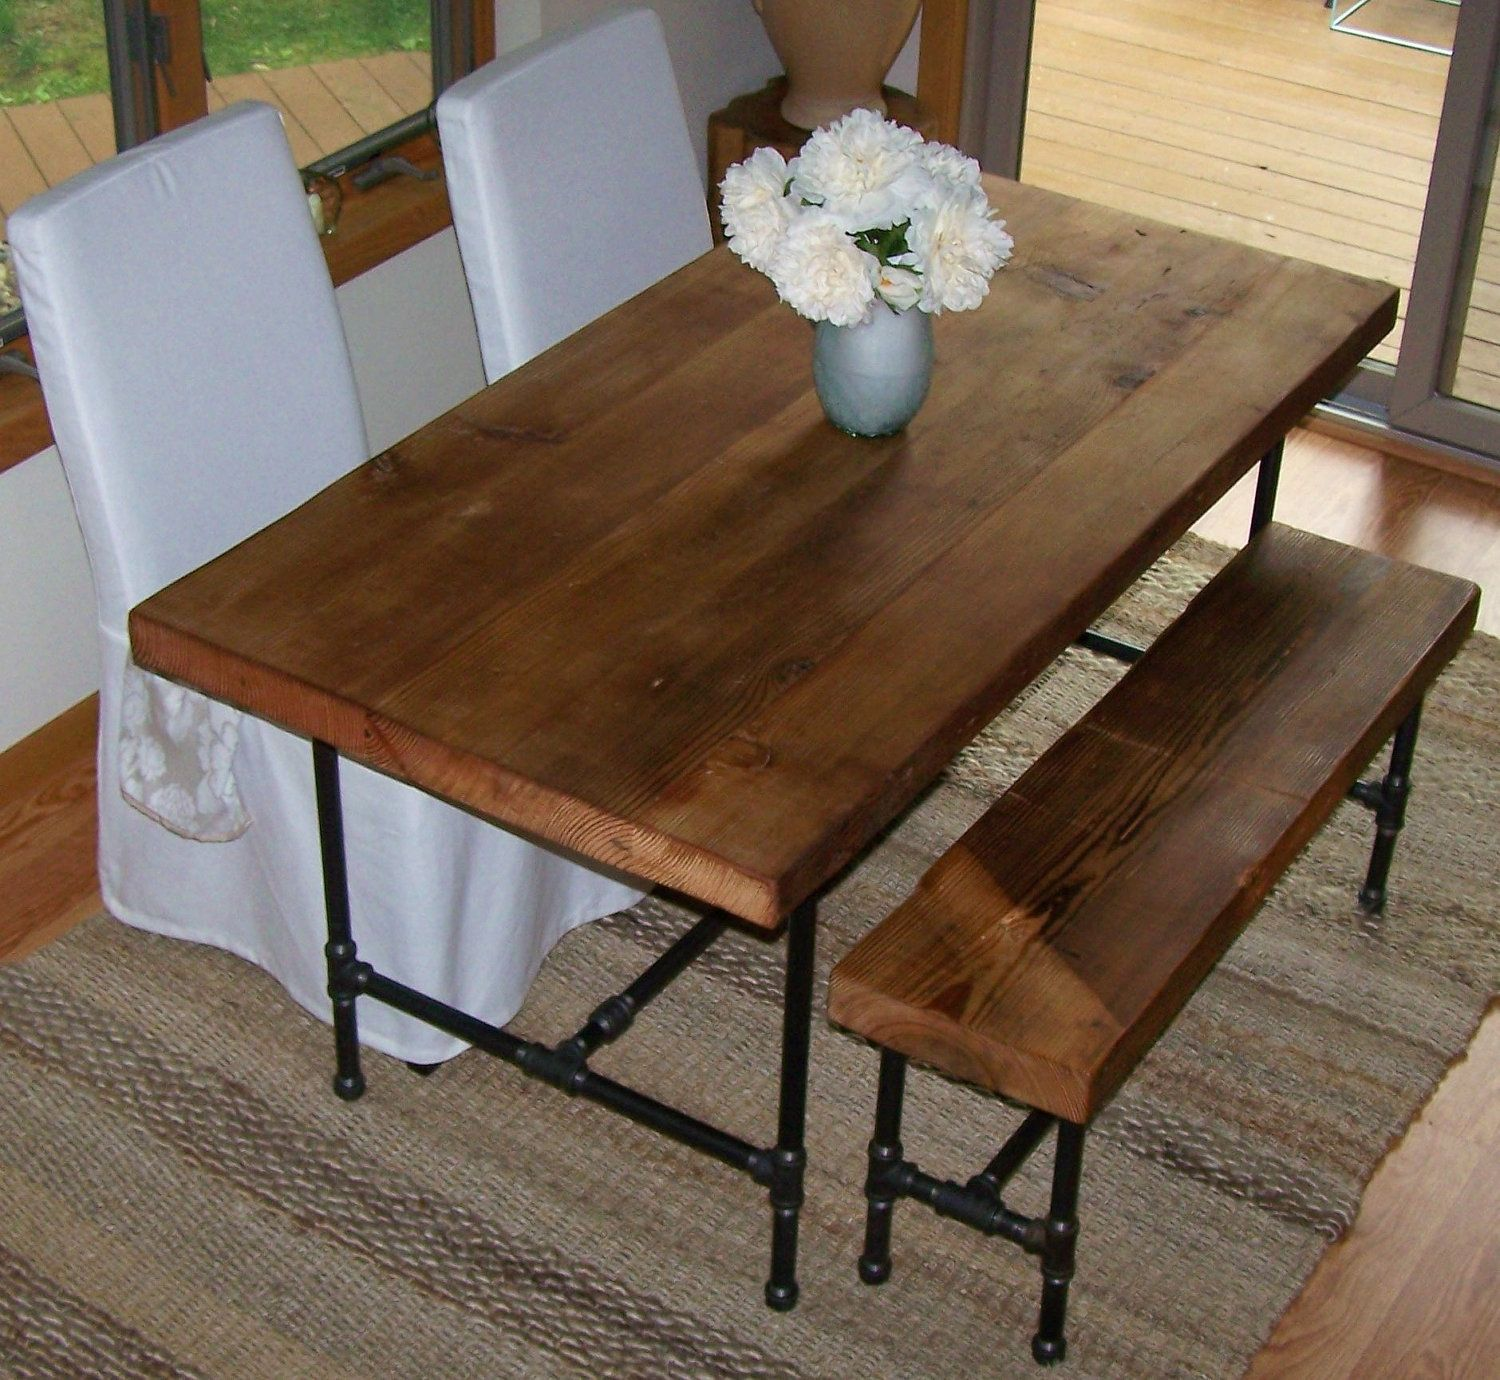 Reclaimed Wood Table With Industrial Pipe Legs Thick Top 60 L X 30 W